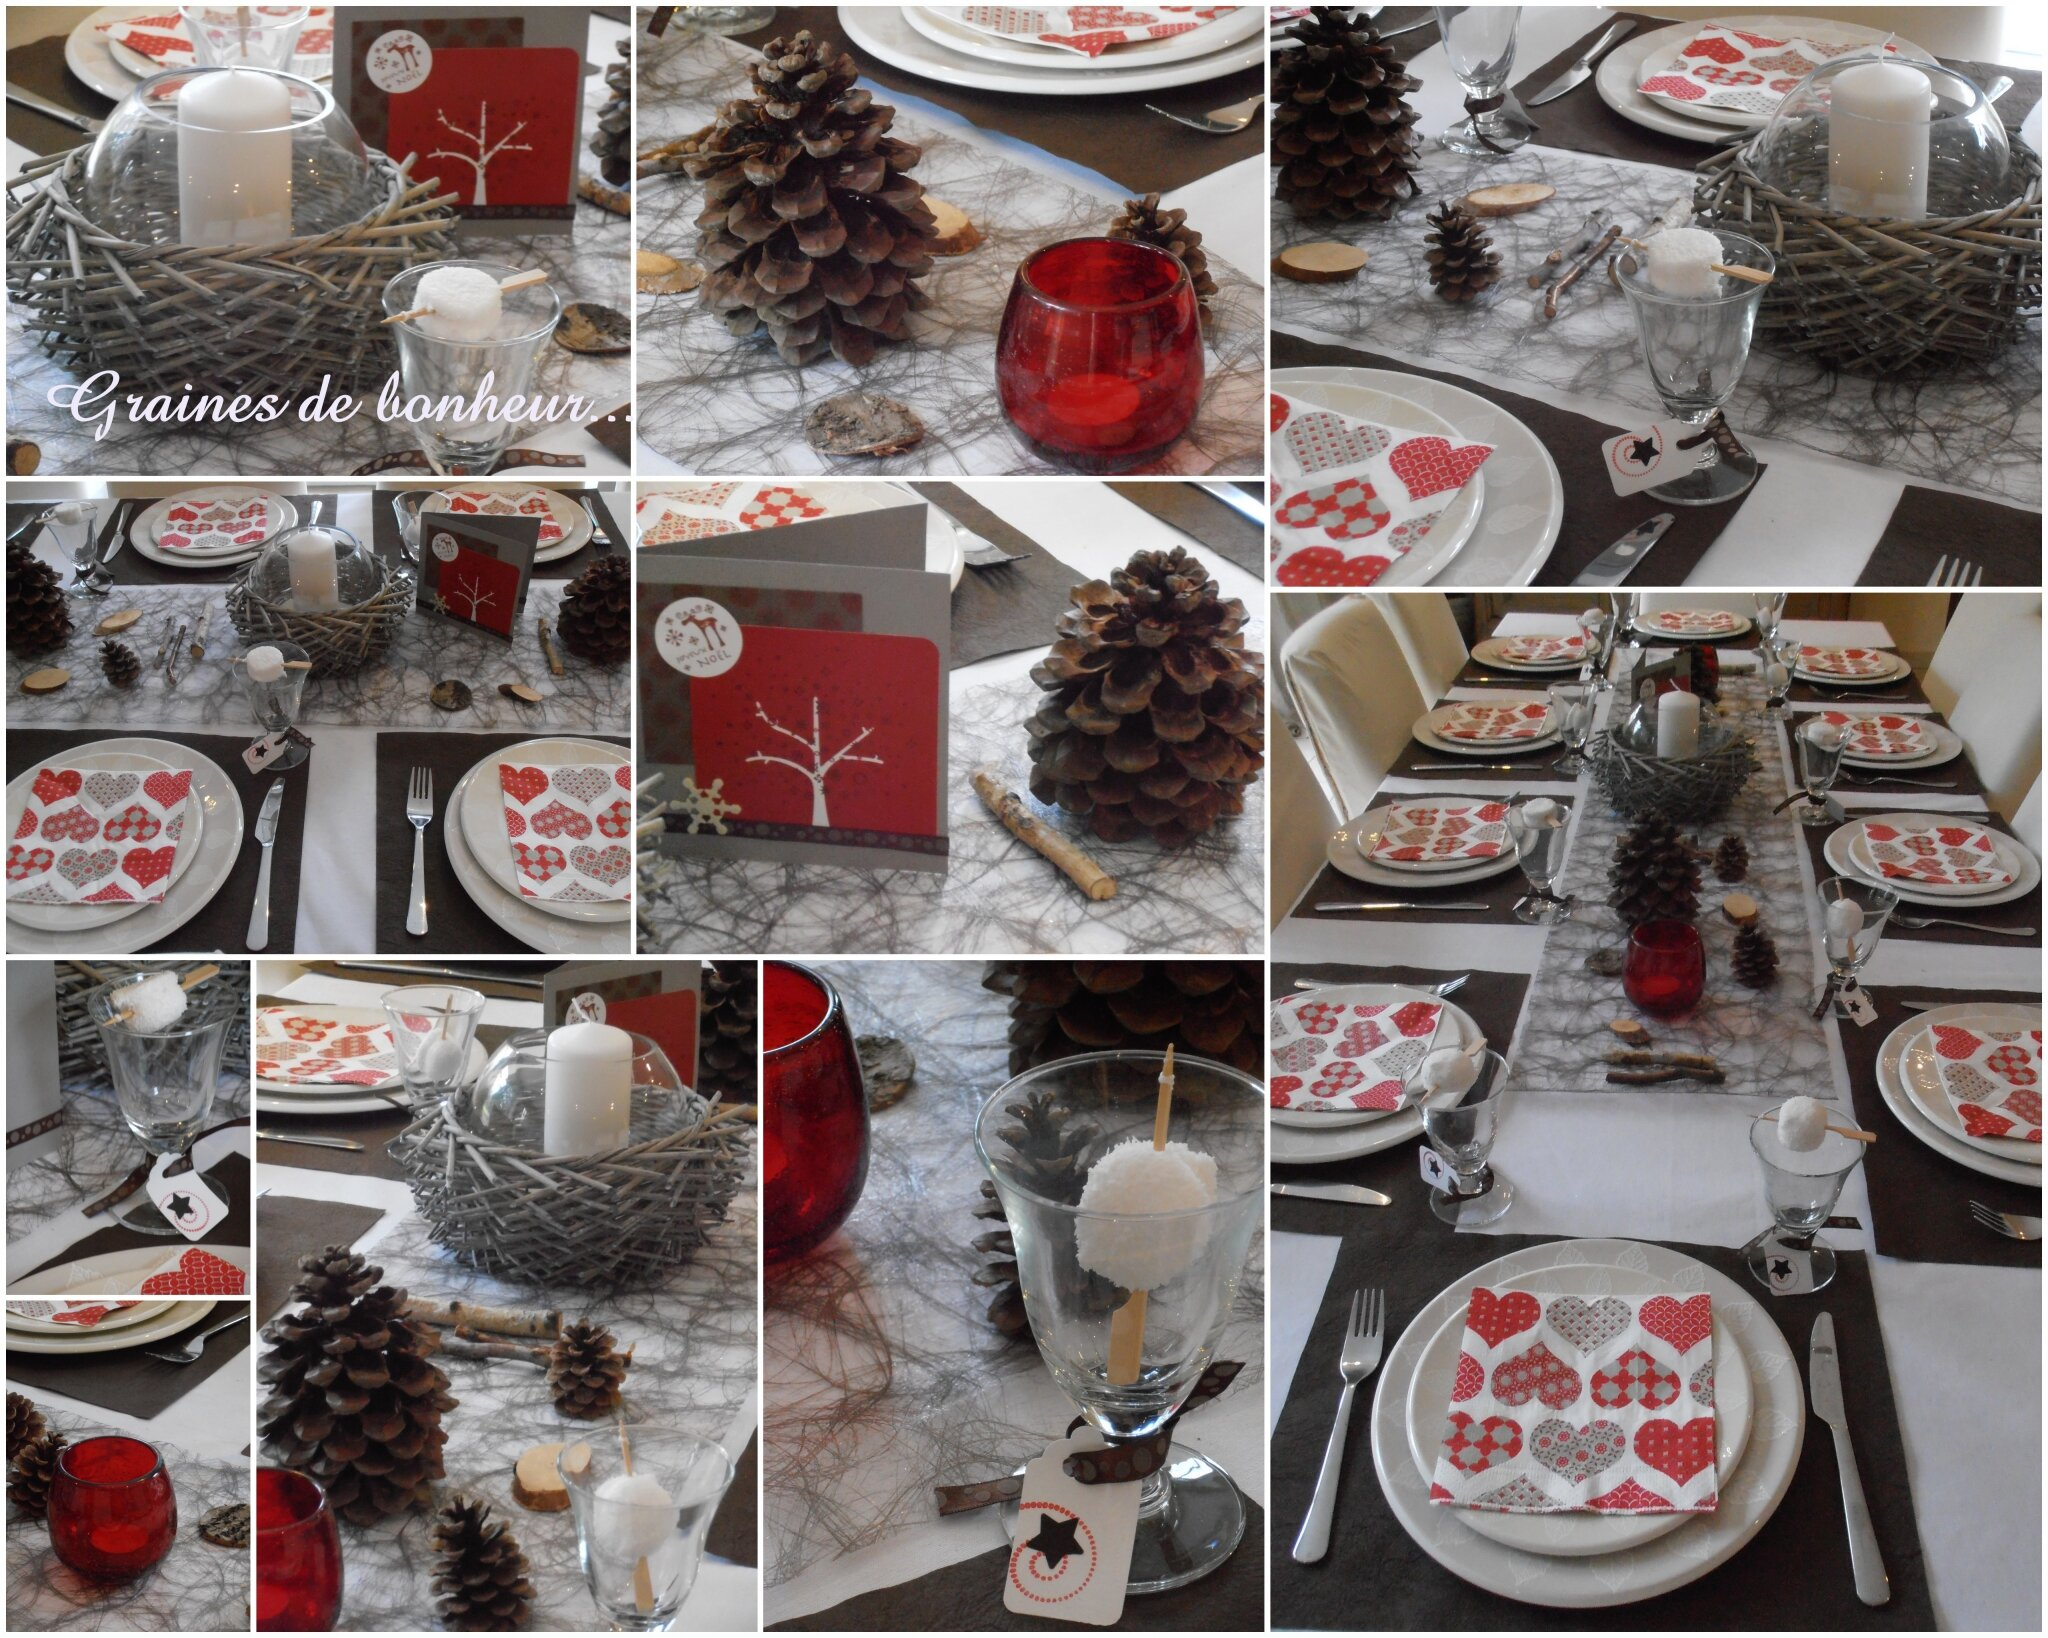 D coration de tables de f tes graines de bonheur - Decoration table de noel rouge et blanc ...